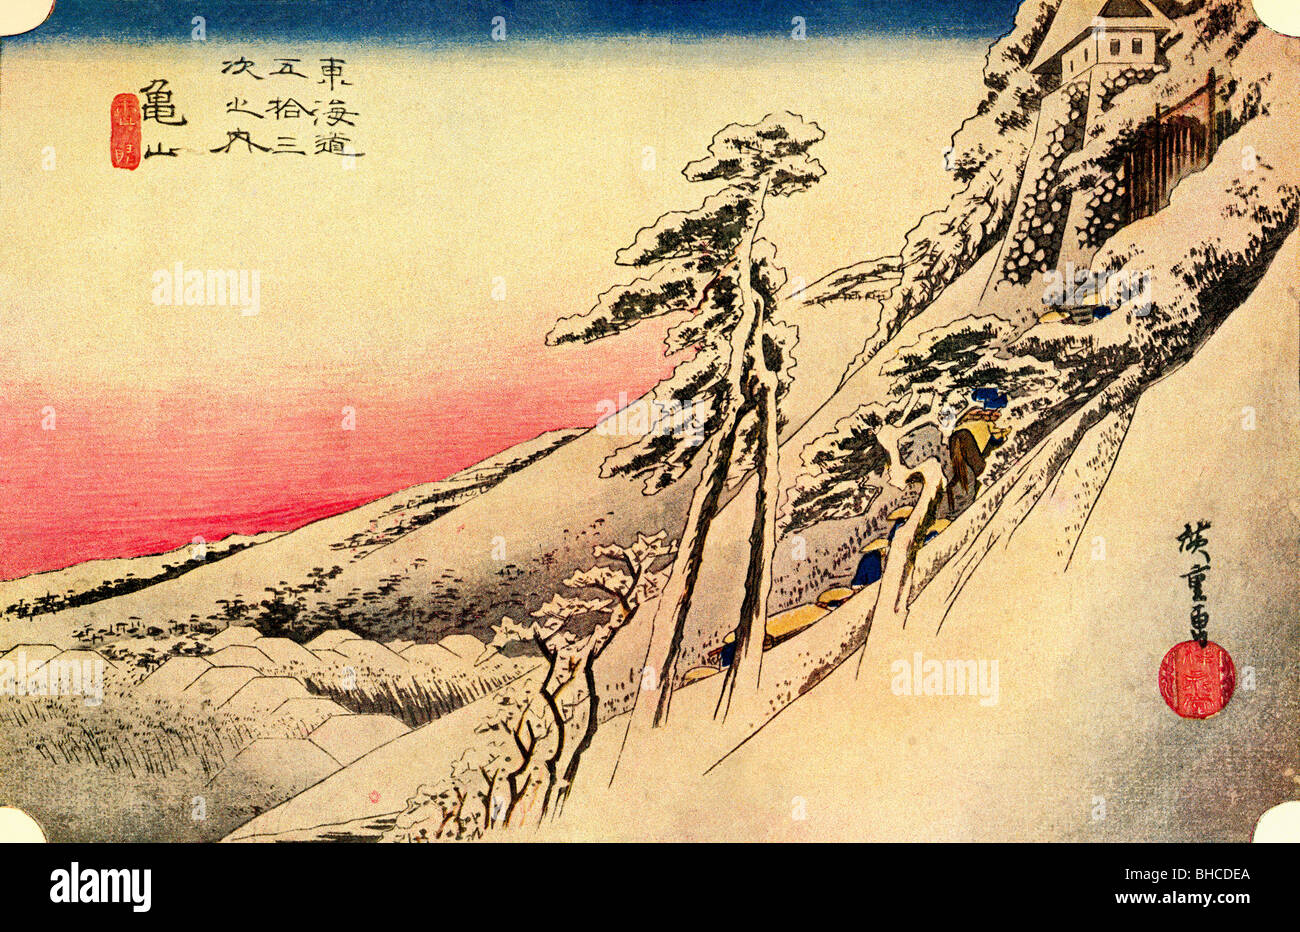 Facsimilie of an Andō Hiroshige print. The Fifty Three Stations of the Tokaido, number 47 Kameyama. - Stock Image